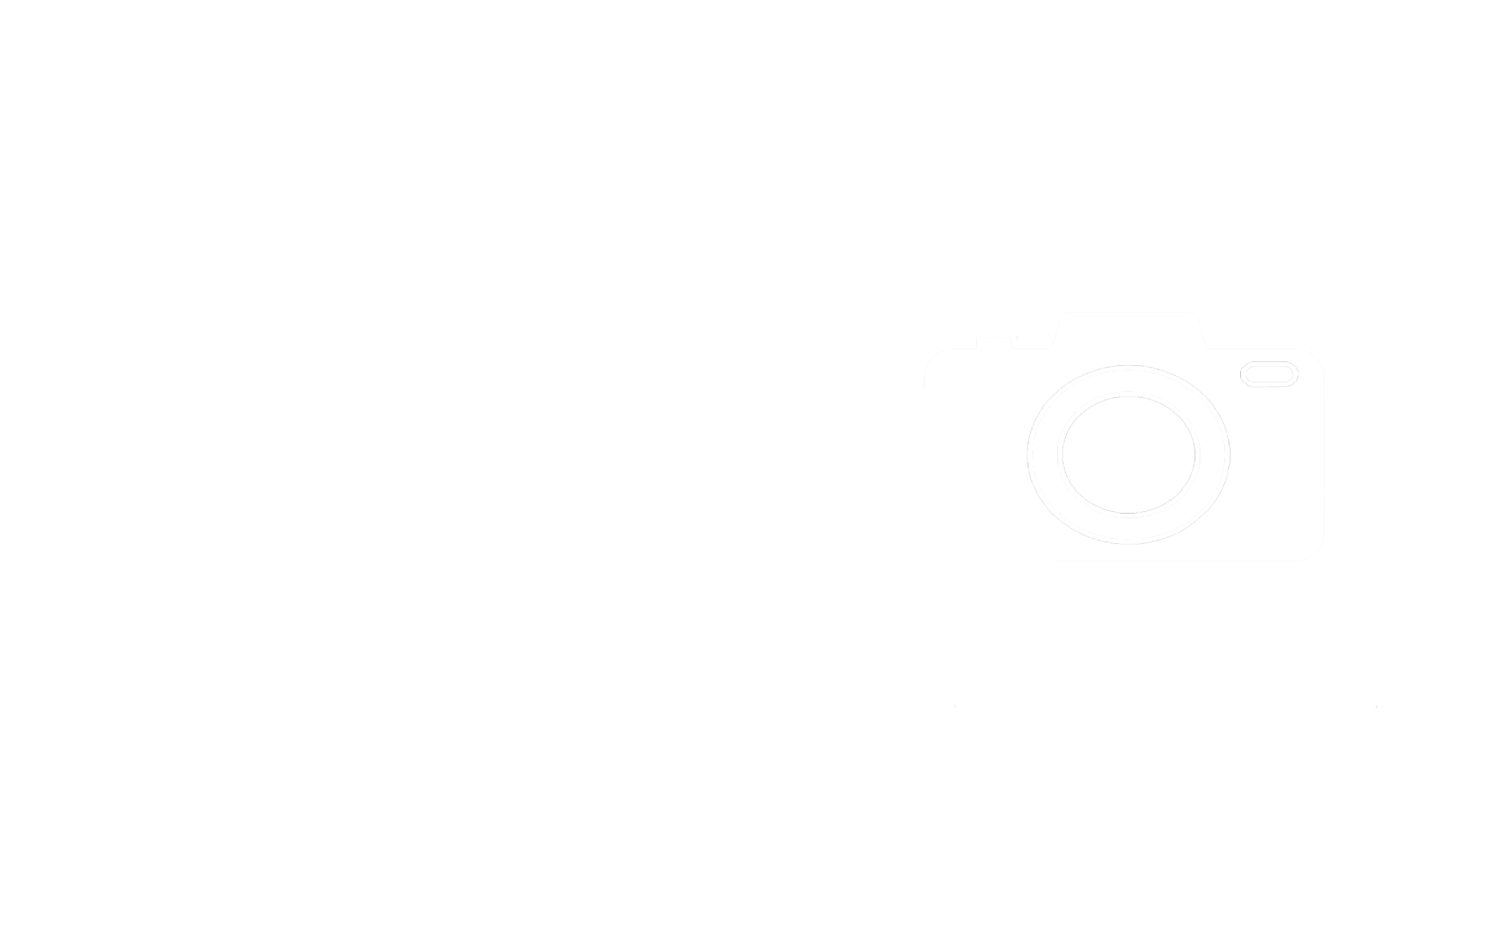 Bend Photo Tours